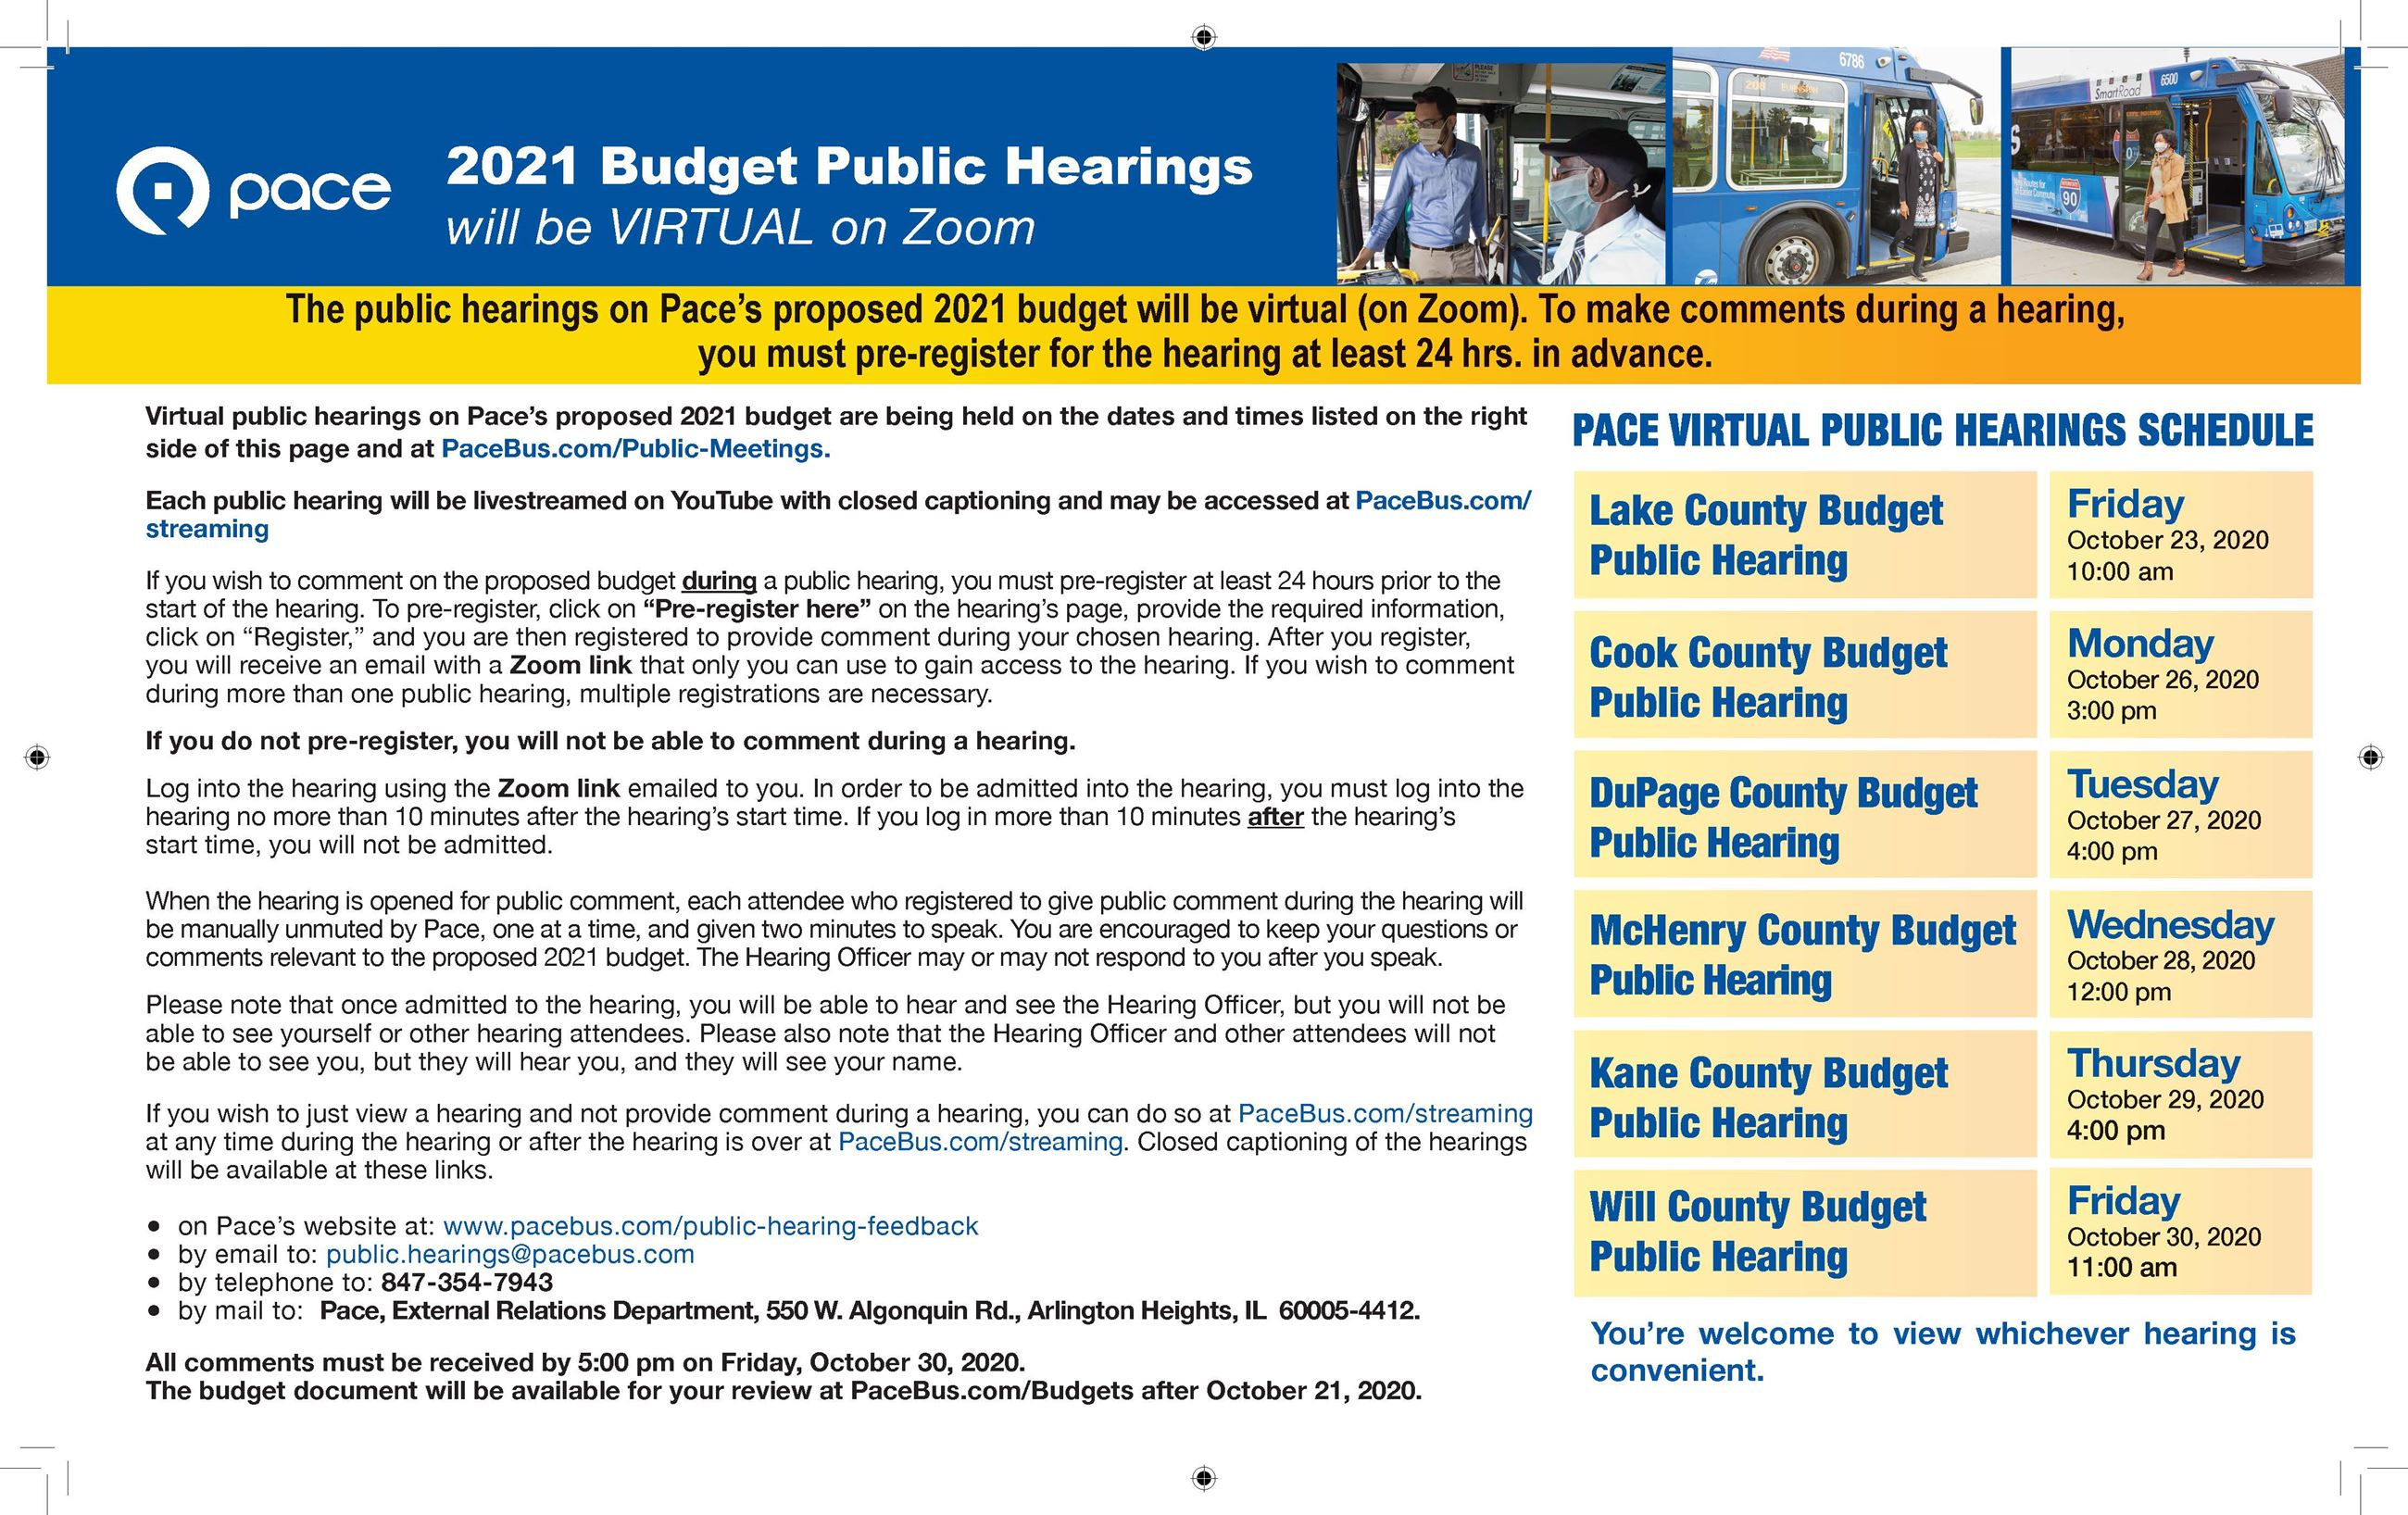 Pace 2021 Budget Public Hearing Schedule  Information Page_1